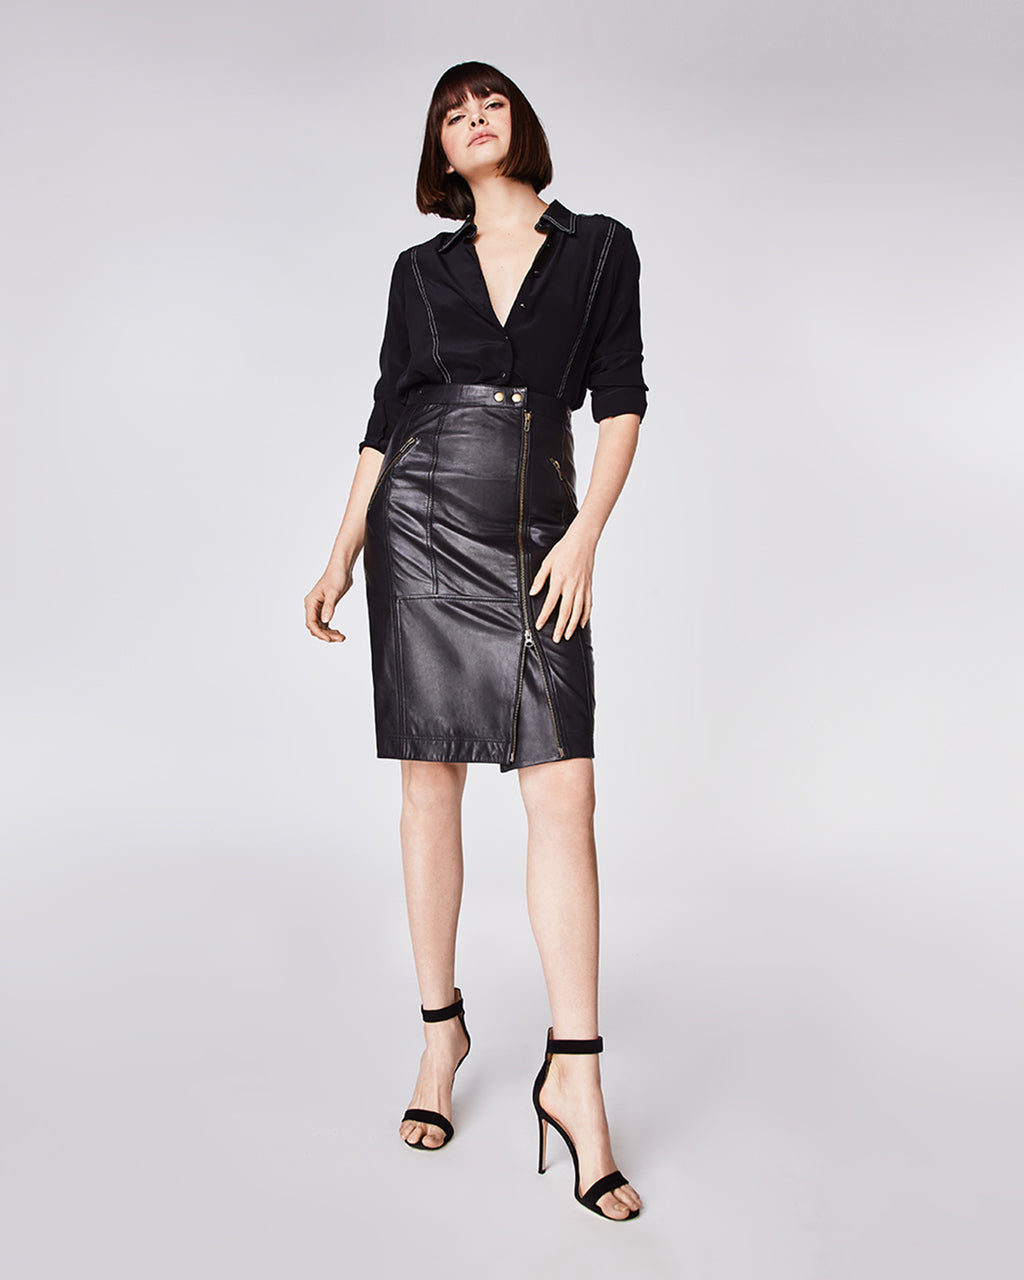 CA10233 - LAMBSKIN LEATHER MOTO SKIRT - bottoms - skirts - The classic pencil skirt, but sexier. In a soft, lambskin leather and crafted with tarnished gold hardware, this form fitting pencil skirt features a full length double zipper and snap buttons for closure. Fully lined.�